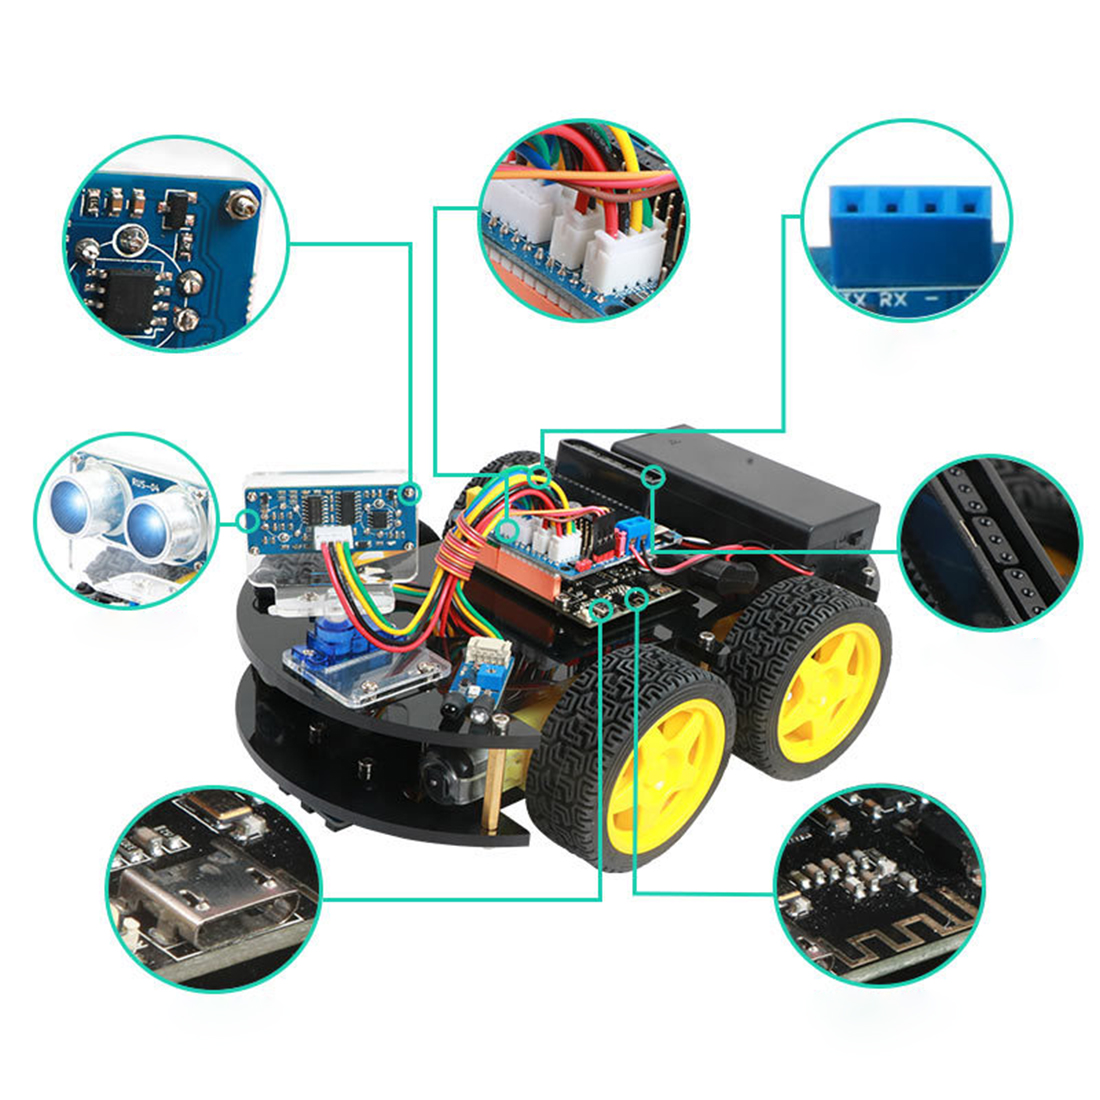 DIY Obstacle Avoidance Smart Programmable Robot Car Educational Learning Kit for Arduino UNO High Tech Toy For Christmas 2